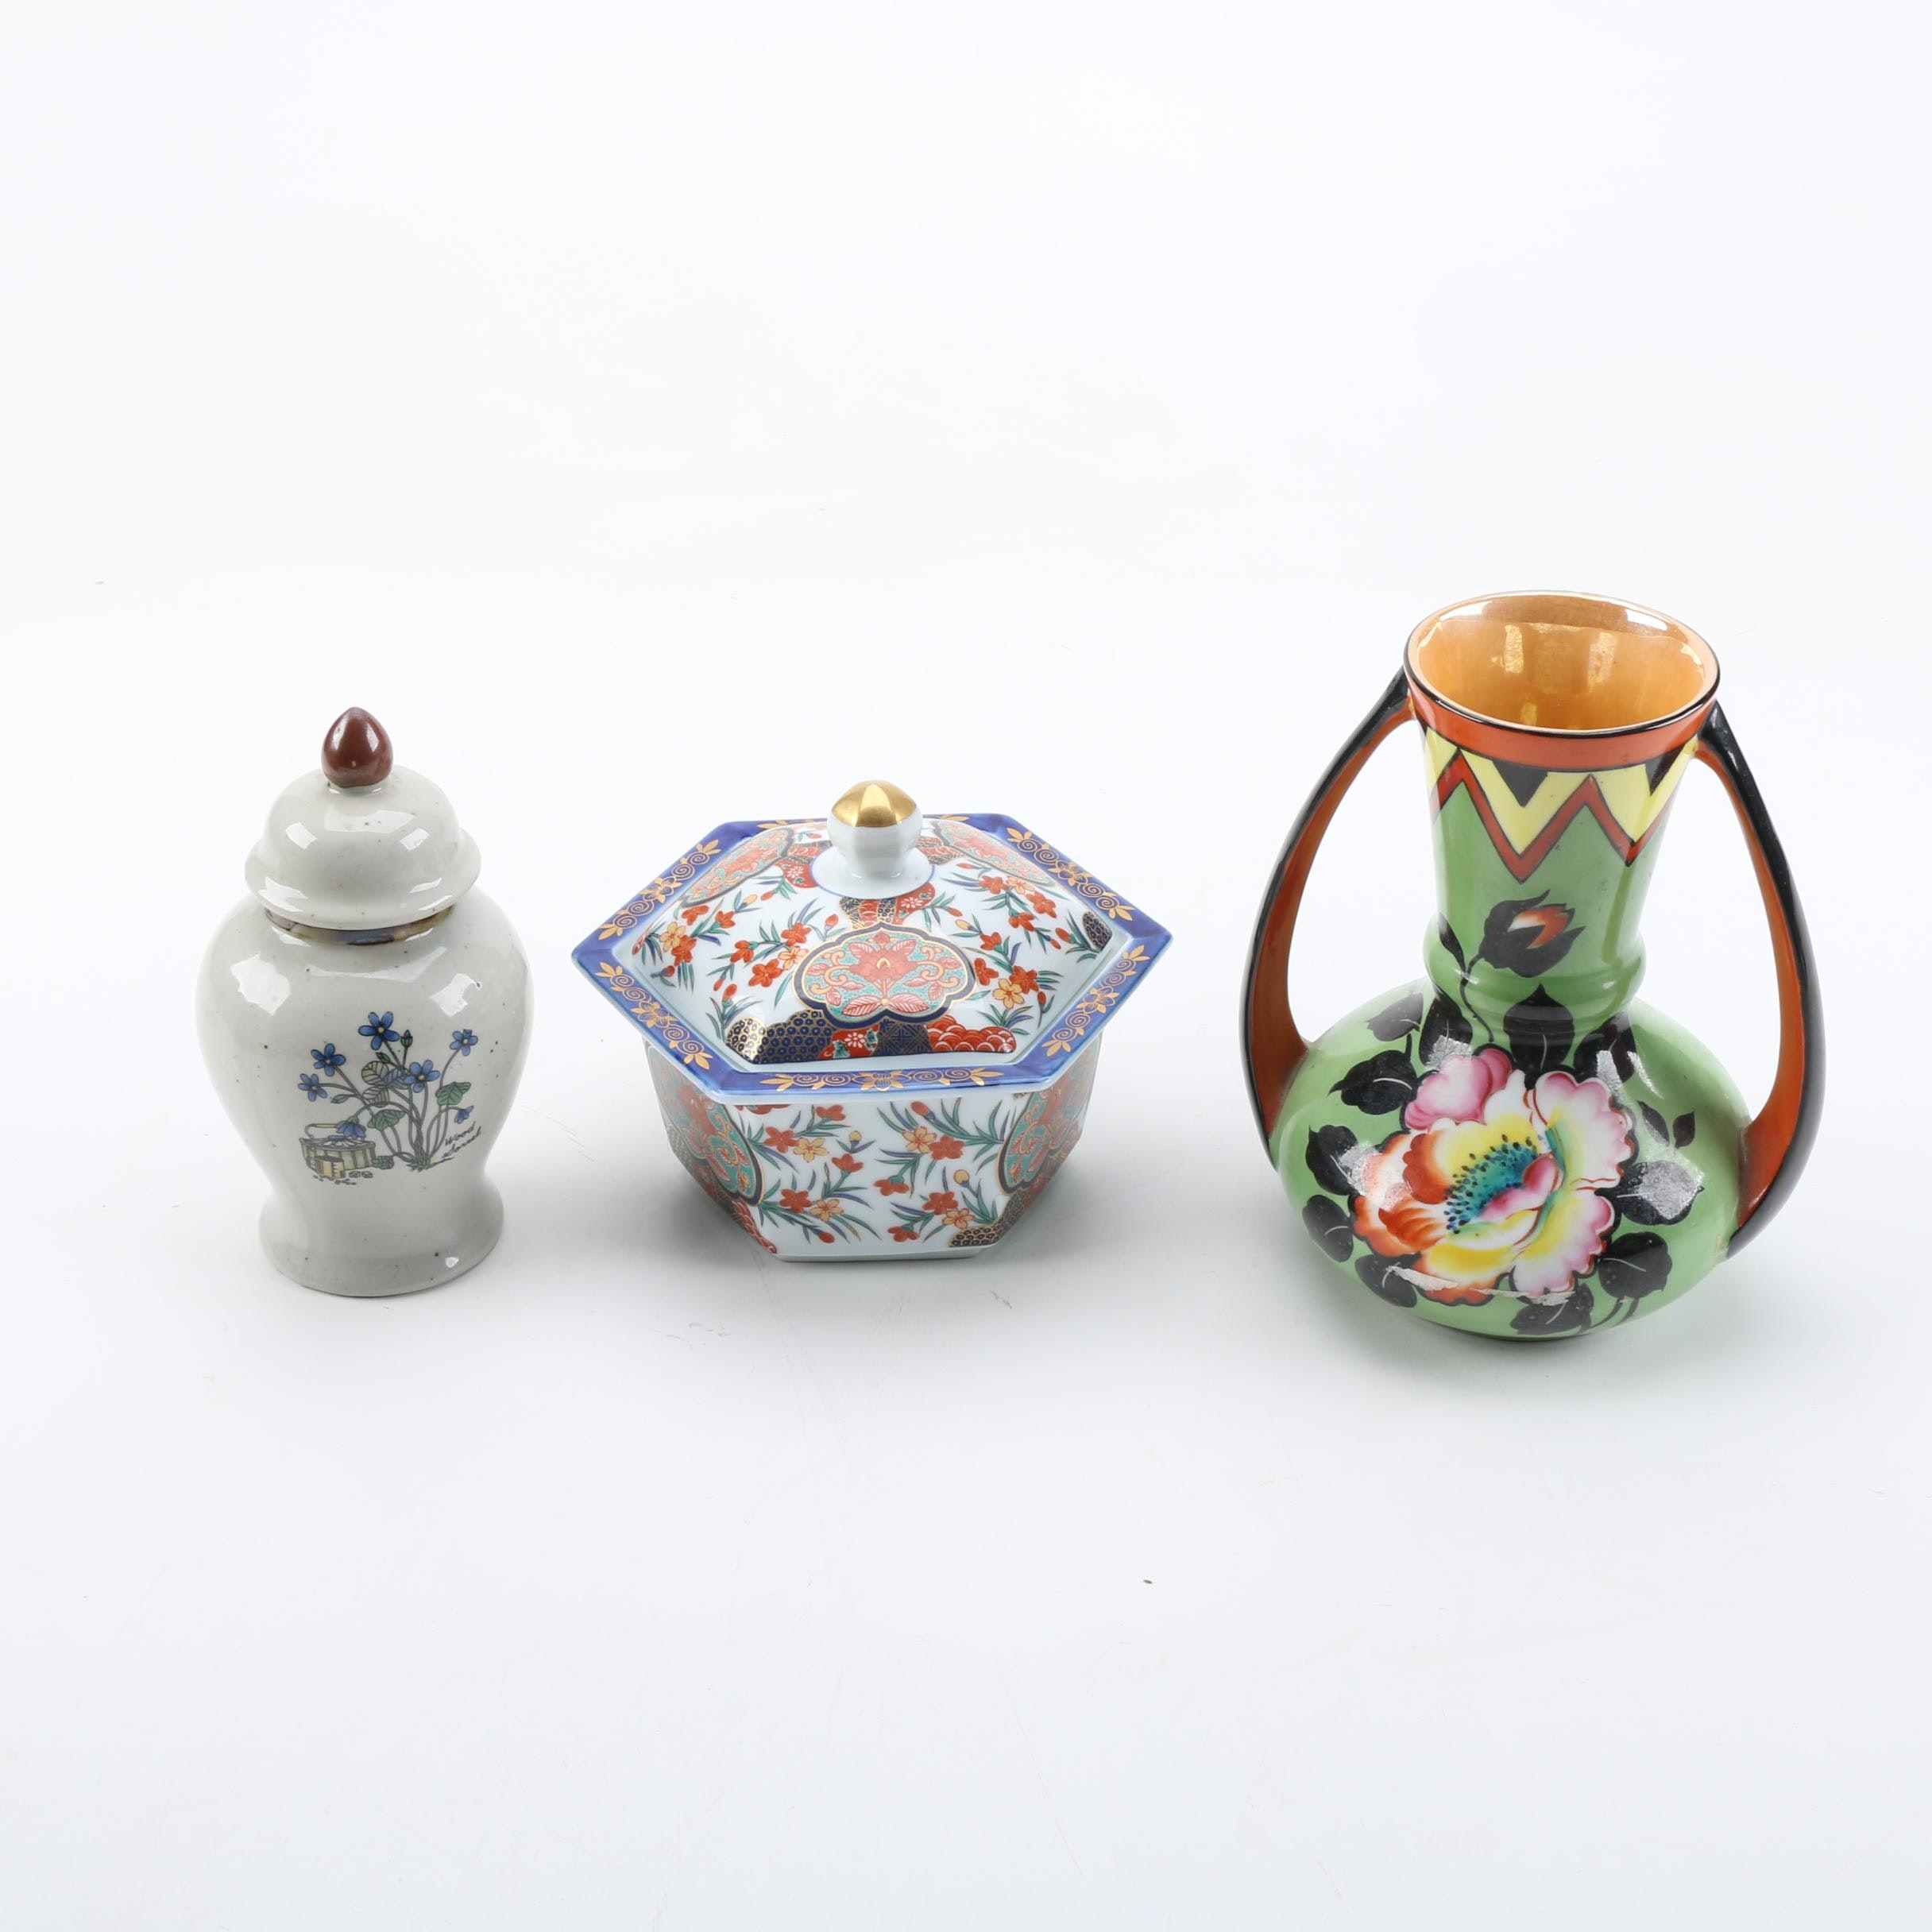 Three Pieces of Asian Inspired Ceramic Decor